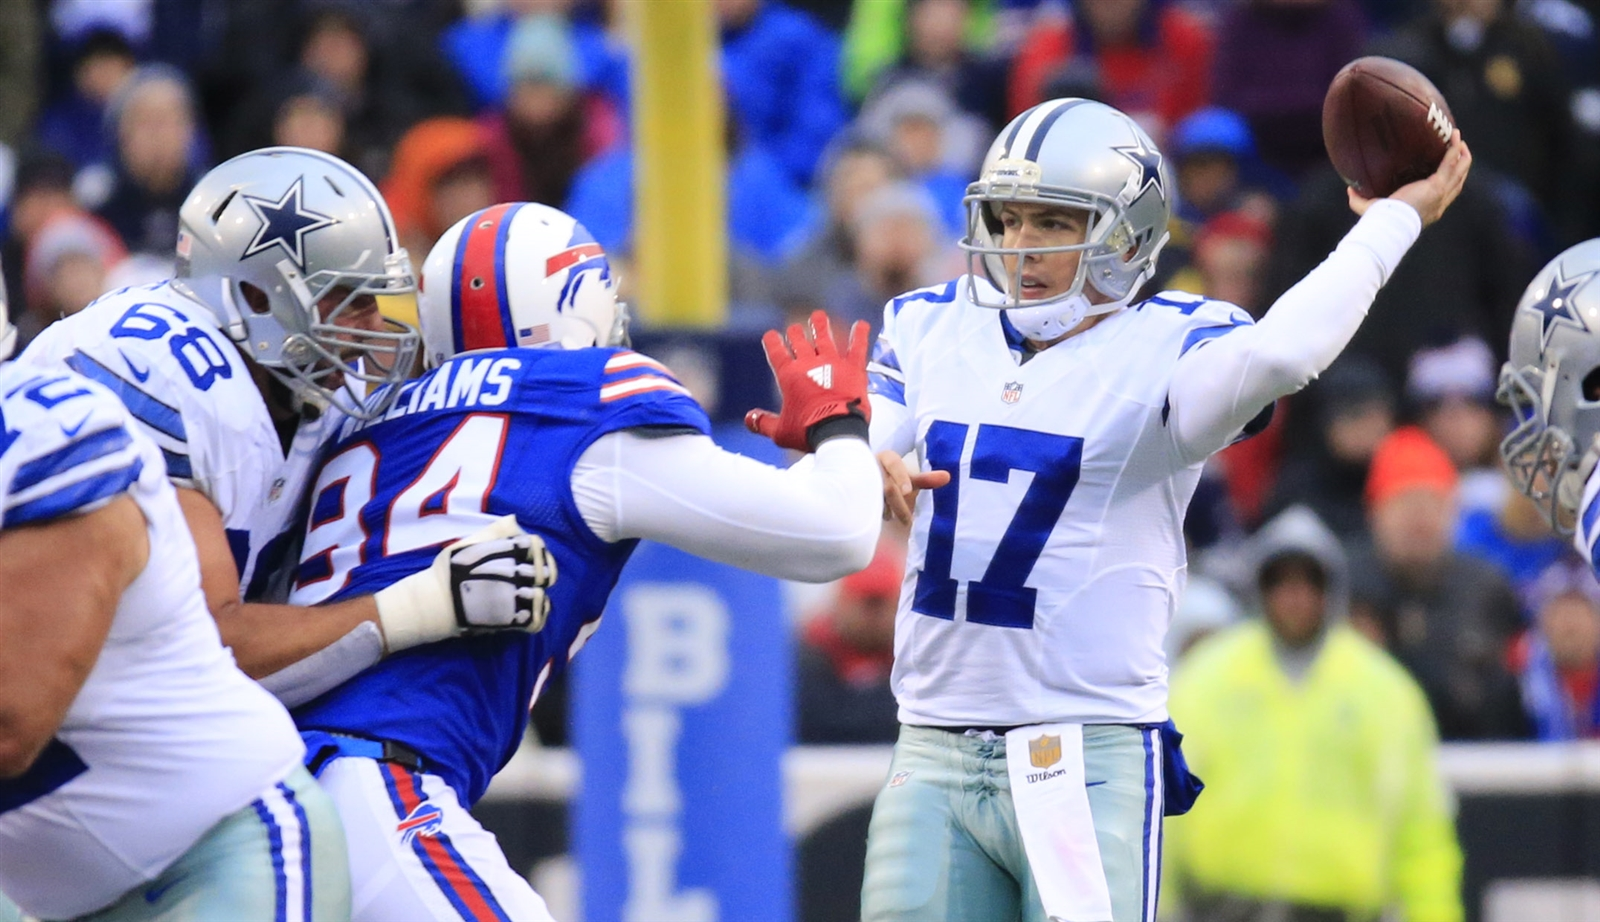 Kellen Moore, promoted from the practice squad three weeks ago, played like a quarterback who was on a practice squad three weeks ago. (Harry Scull Jr./Buffalo News)